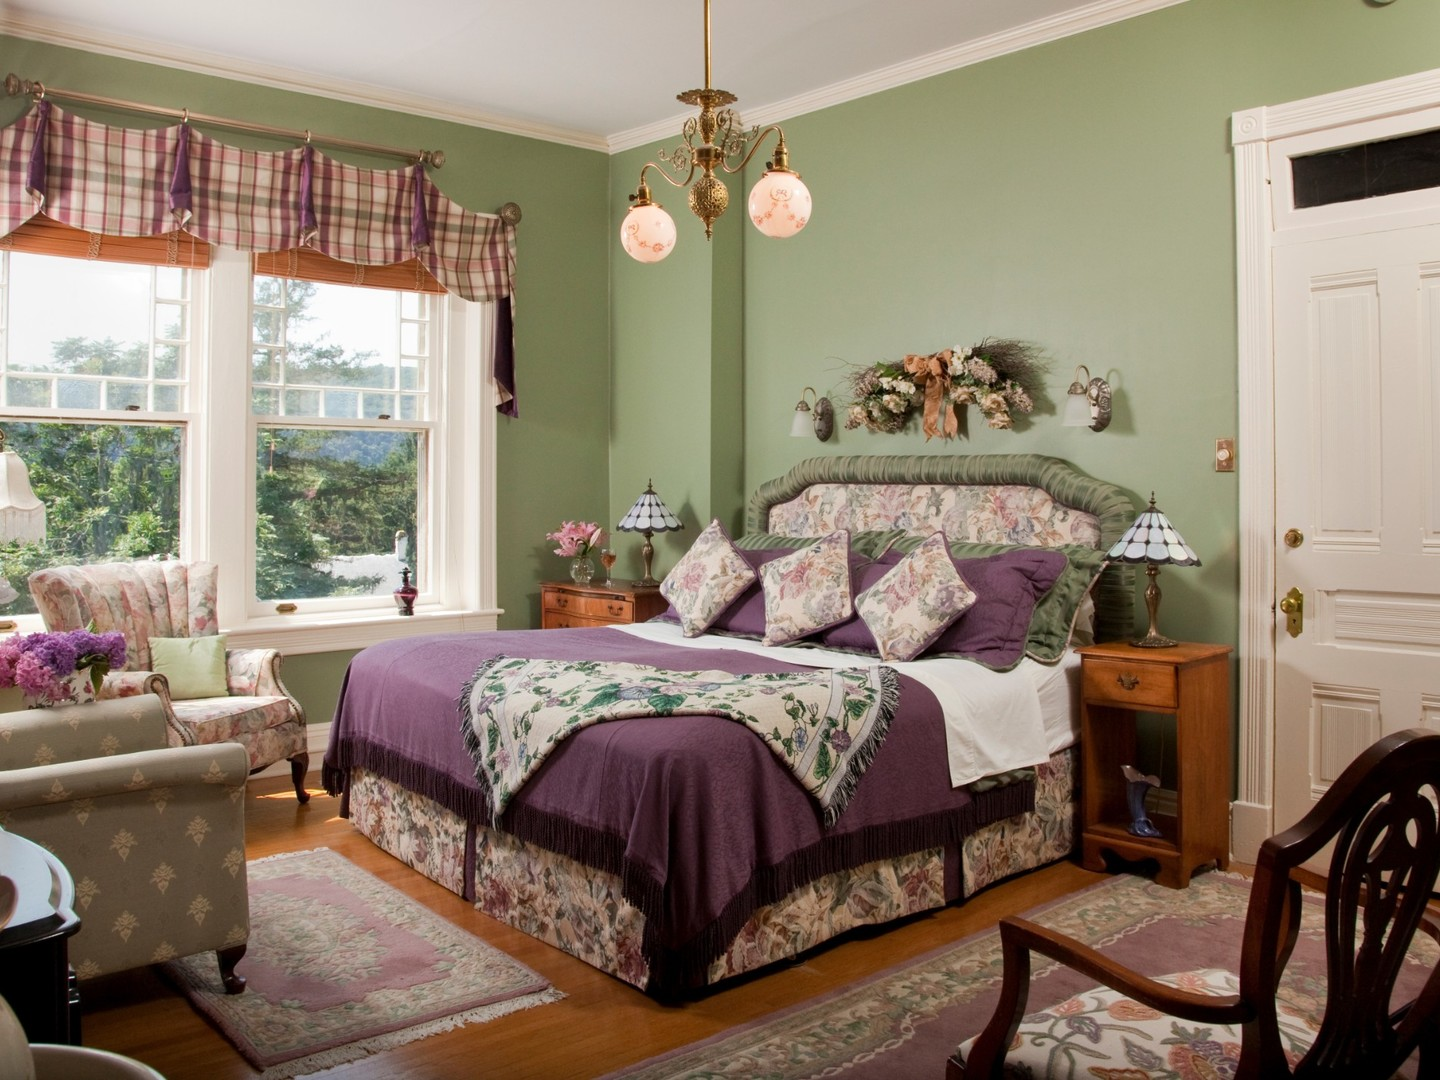 A bedroom with a bed and a chair in a room at B.F. Hiestand House Bed and Breakfast.